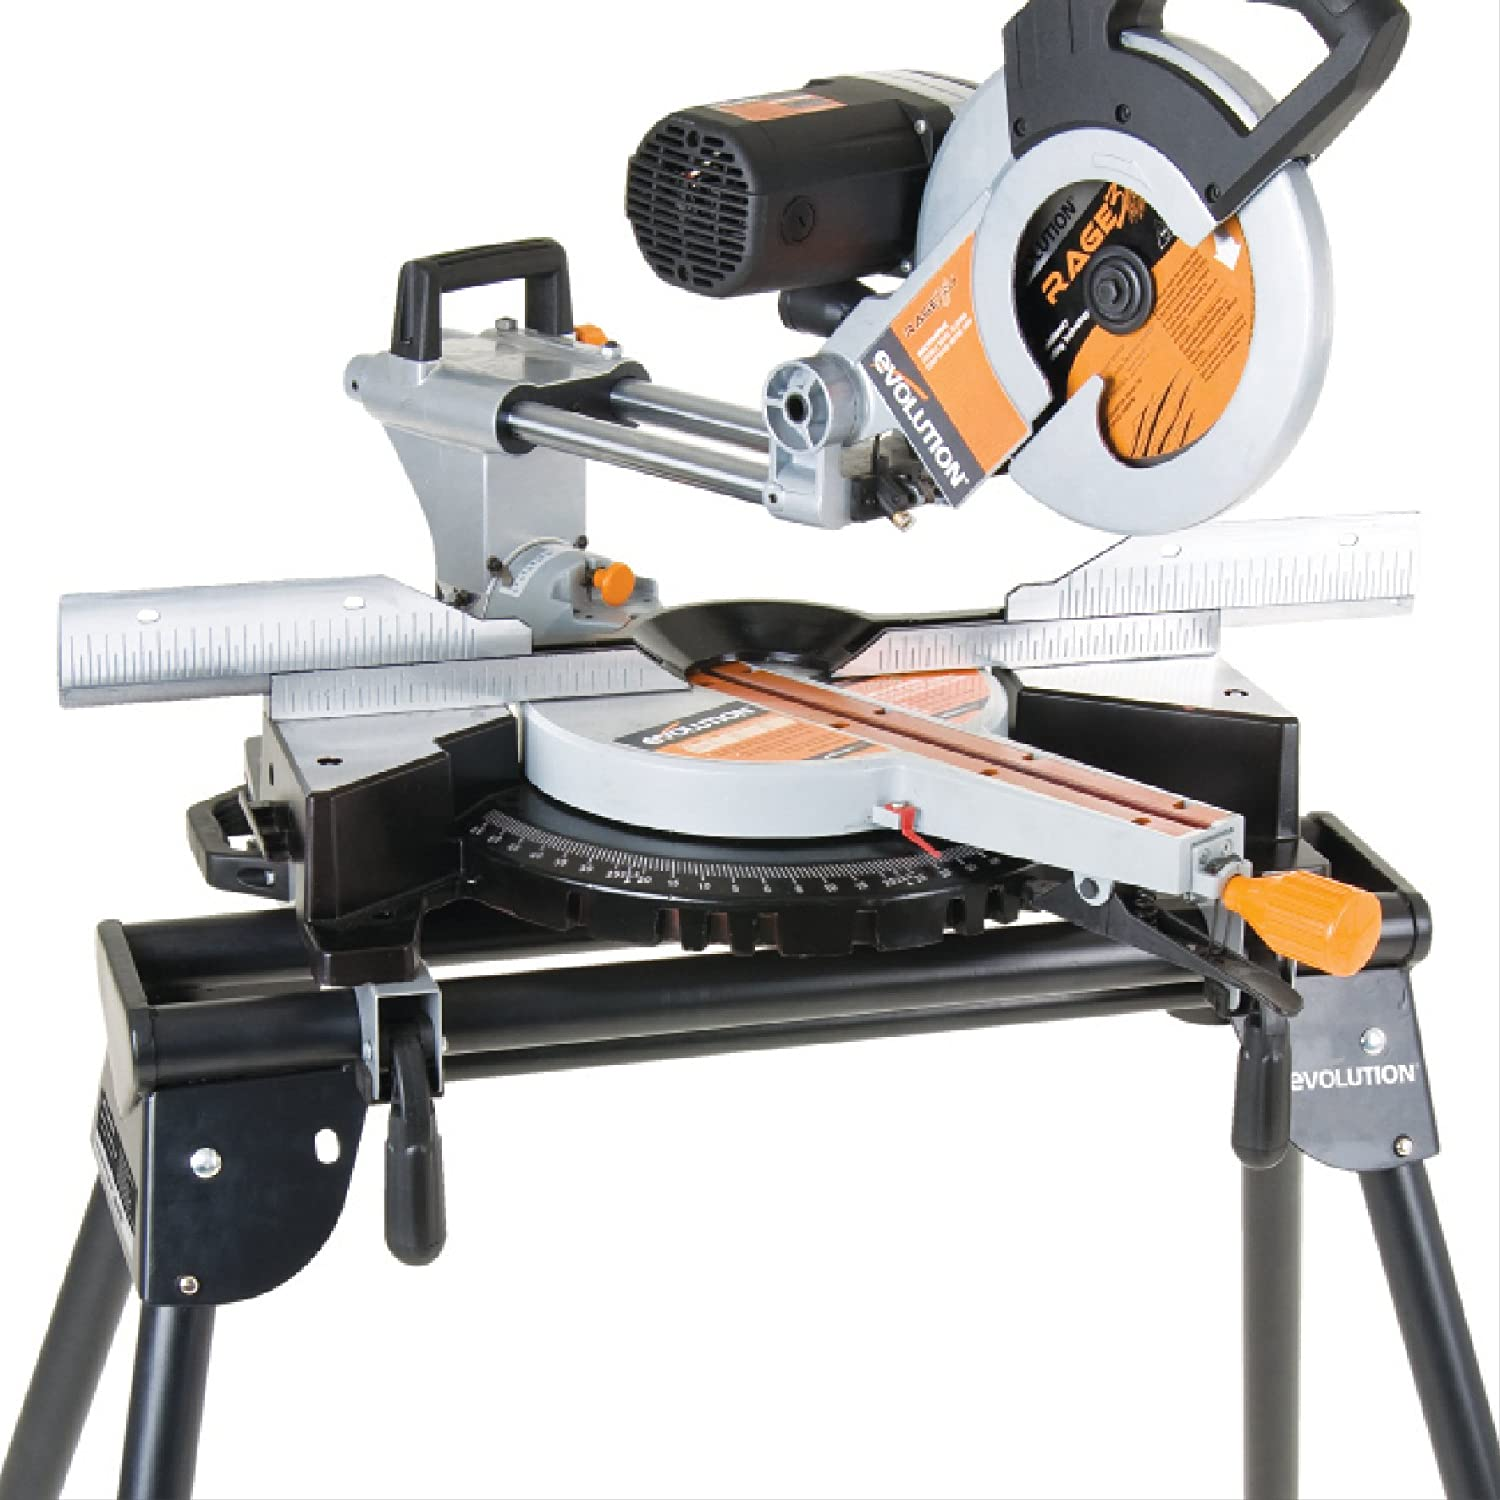 Evolution Mitre Saw Stand Table Bench Workstation With Extensions Brand New Ebay